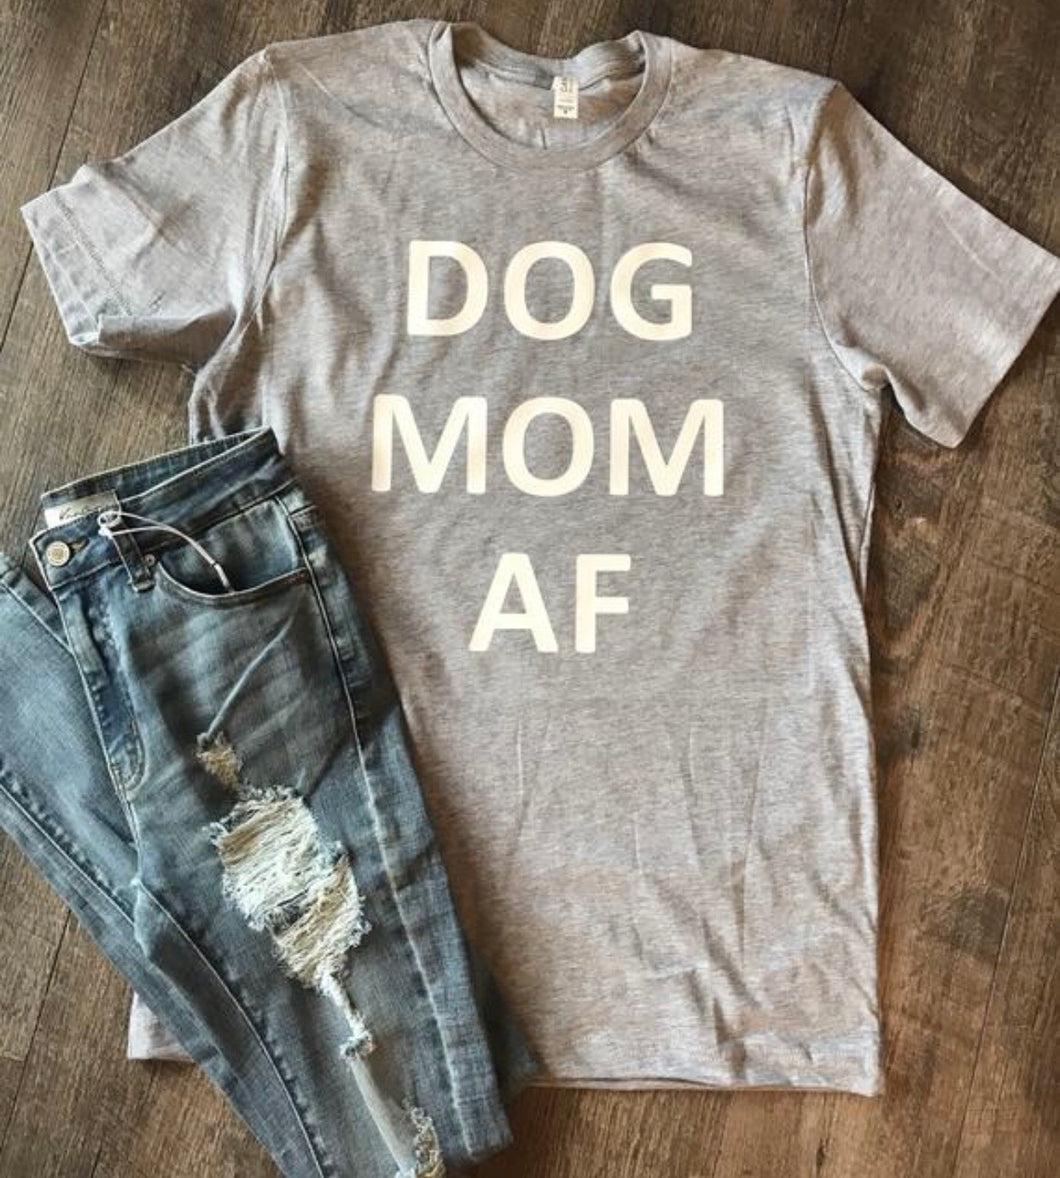 Dog mom af. funny graphic tee. dog mom. mothers day gift. womens graphic tee. personalized shirt. - Mavictoria Designs Hot Press Express